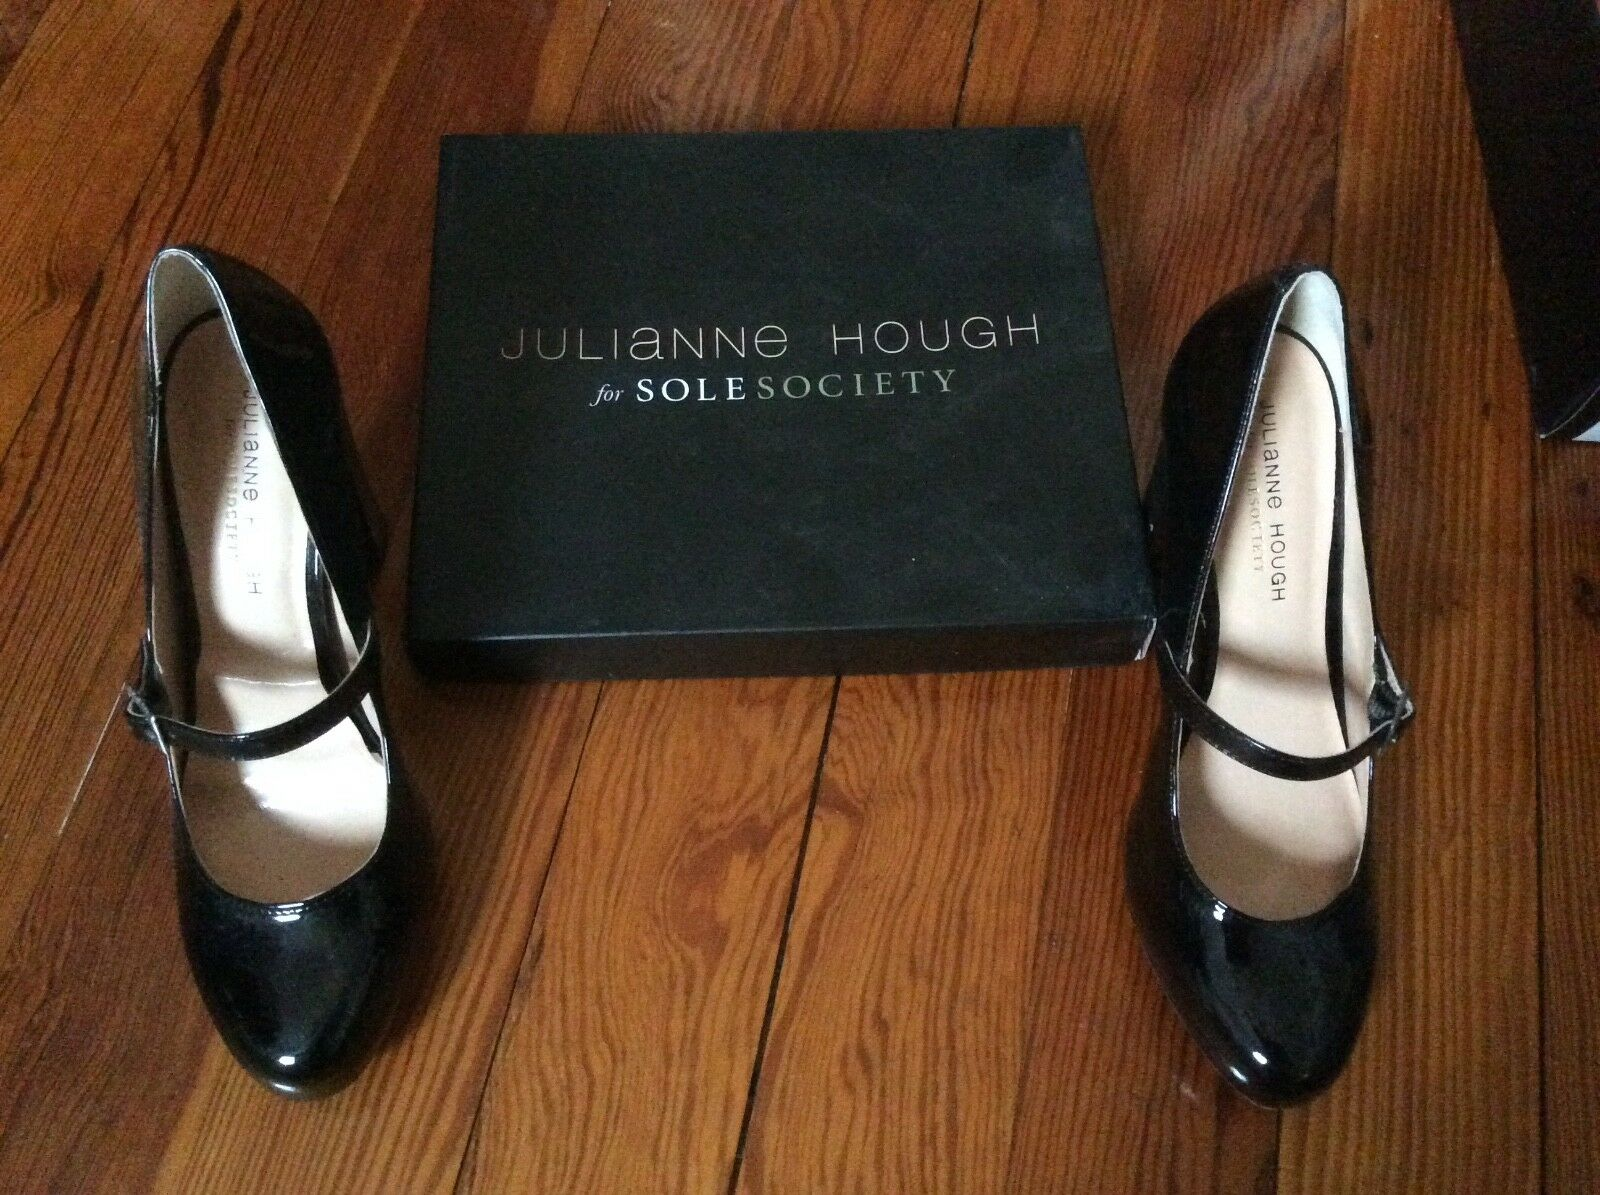 Women's Julianne Hough Sole Society black patent leather heel shoes size 8.5